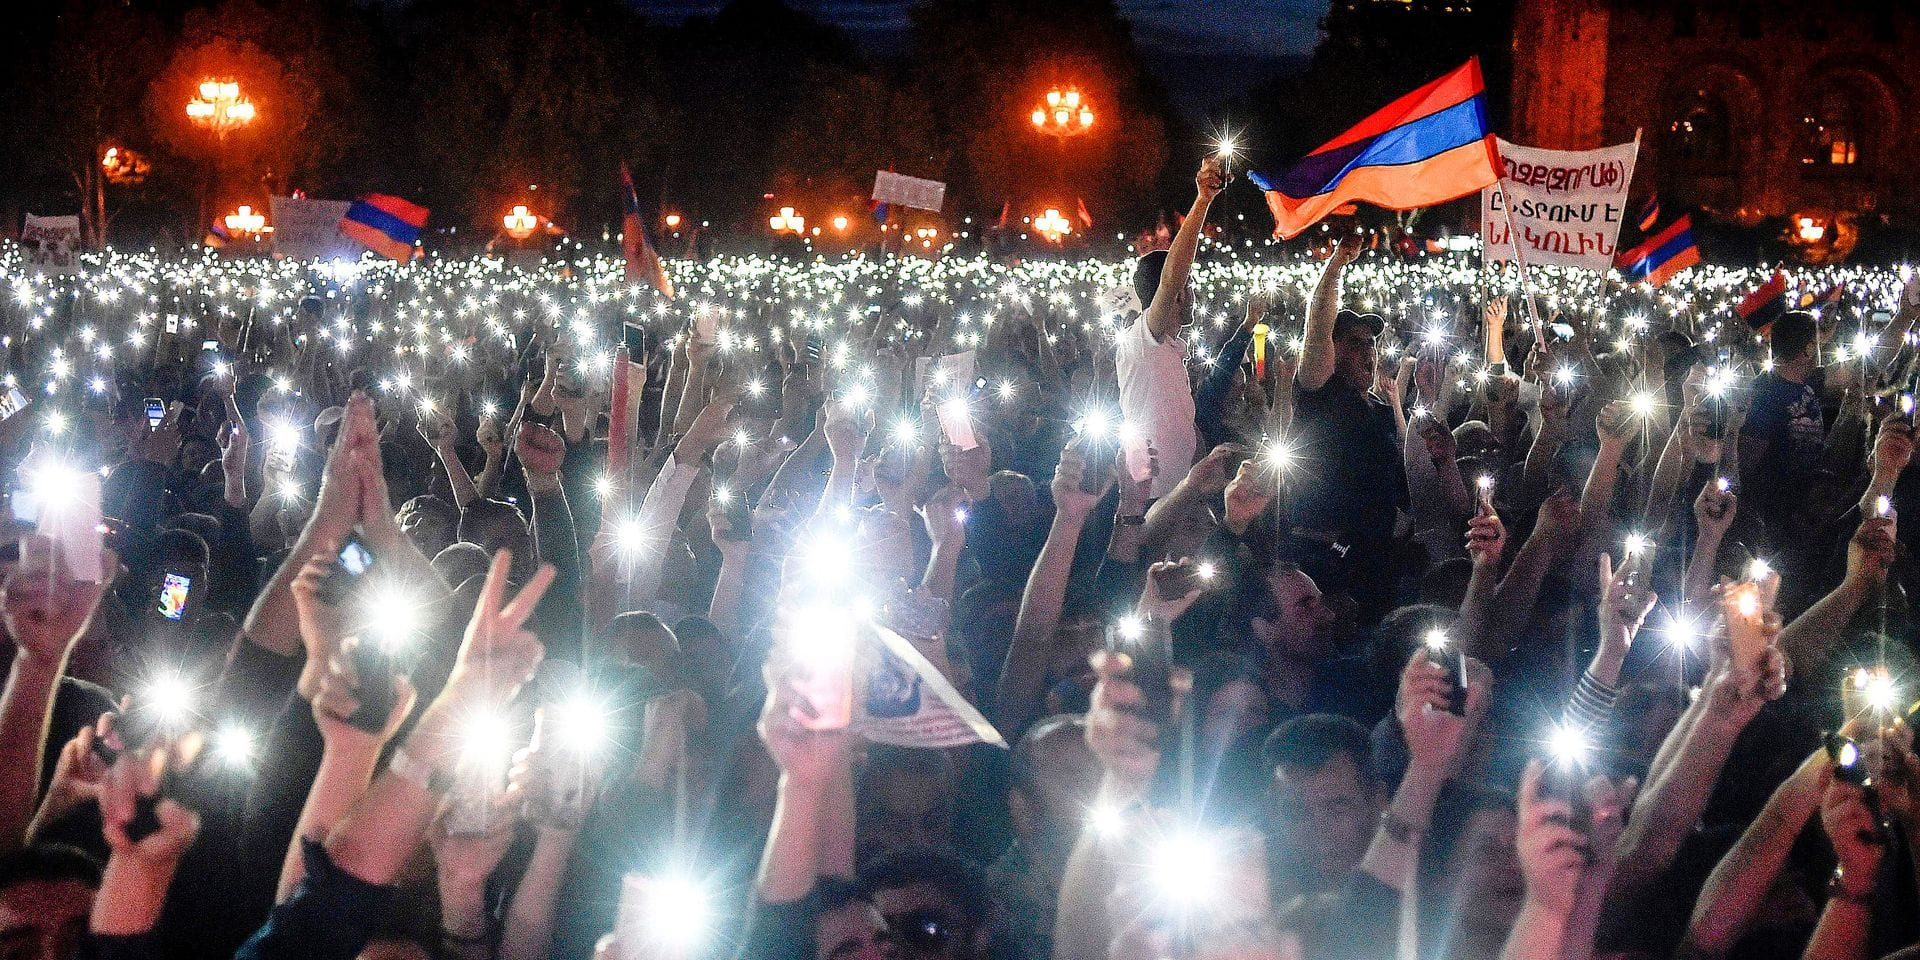 Armenian opposition supporters attend a rally in Yerevan on May 2, 2018, as popular anger exploded over the ruling party's rejection of opposition leader's premiership bid. Tens of thousands of Armenians on May 2, converged on the capital, blocking roads and government buildings, as popular anger exploded over the ruling party's rejection of opposition leader Nikol Pashinyan's premiership bid. In an unprecedented show of defiance, protesters paralysed Yerevan, with nearly all streets closed to traffic and many stores shut. / AFP PHOTO / Sergei GAPON